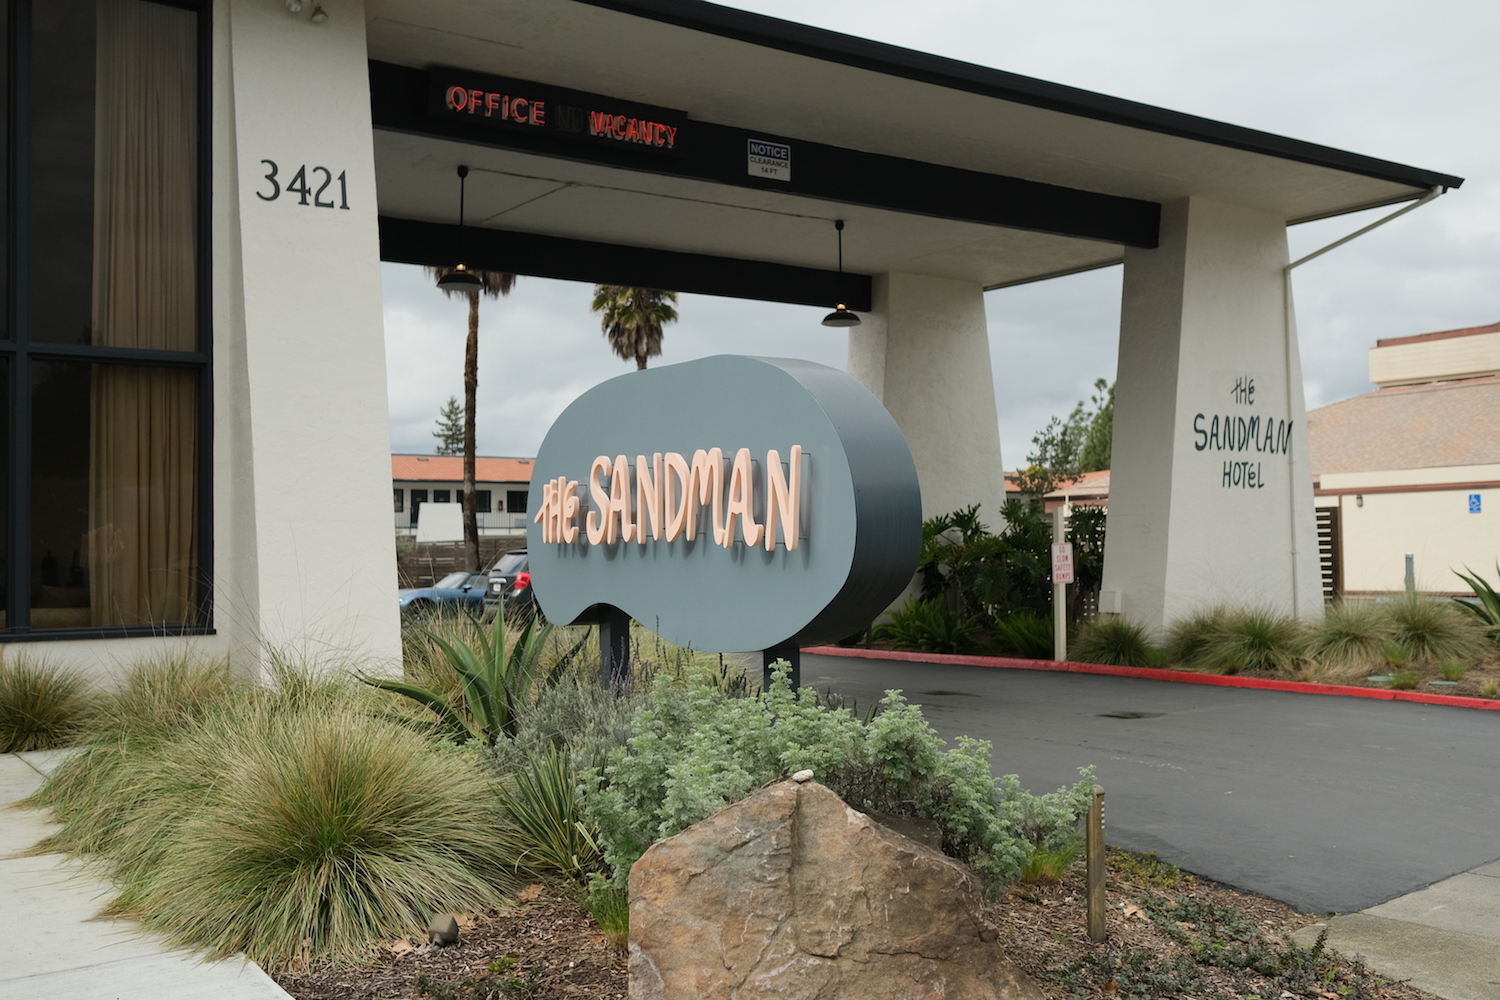 The Sandman Hotel in Santa Rosa, CA